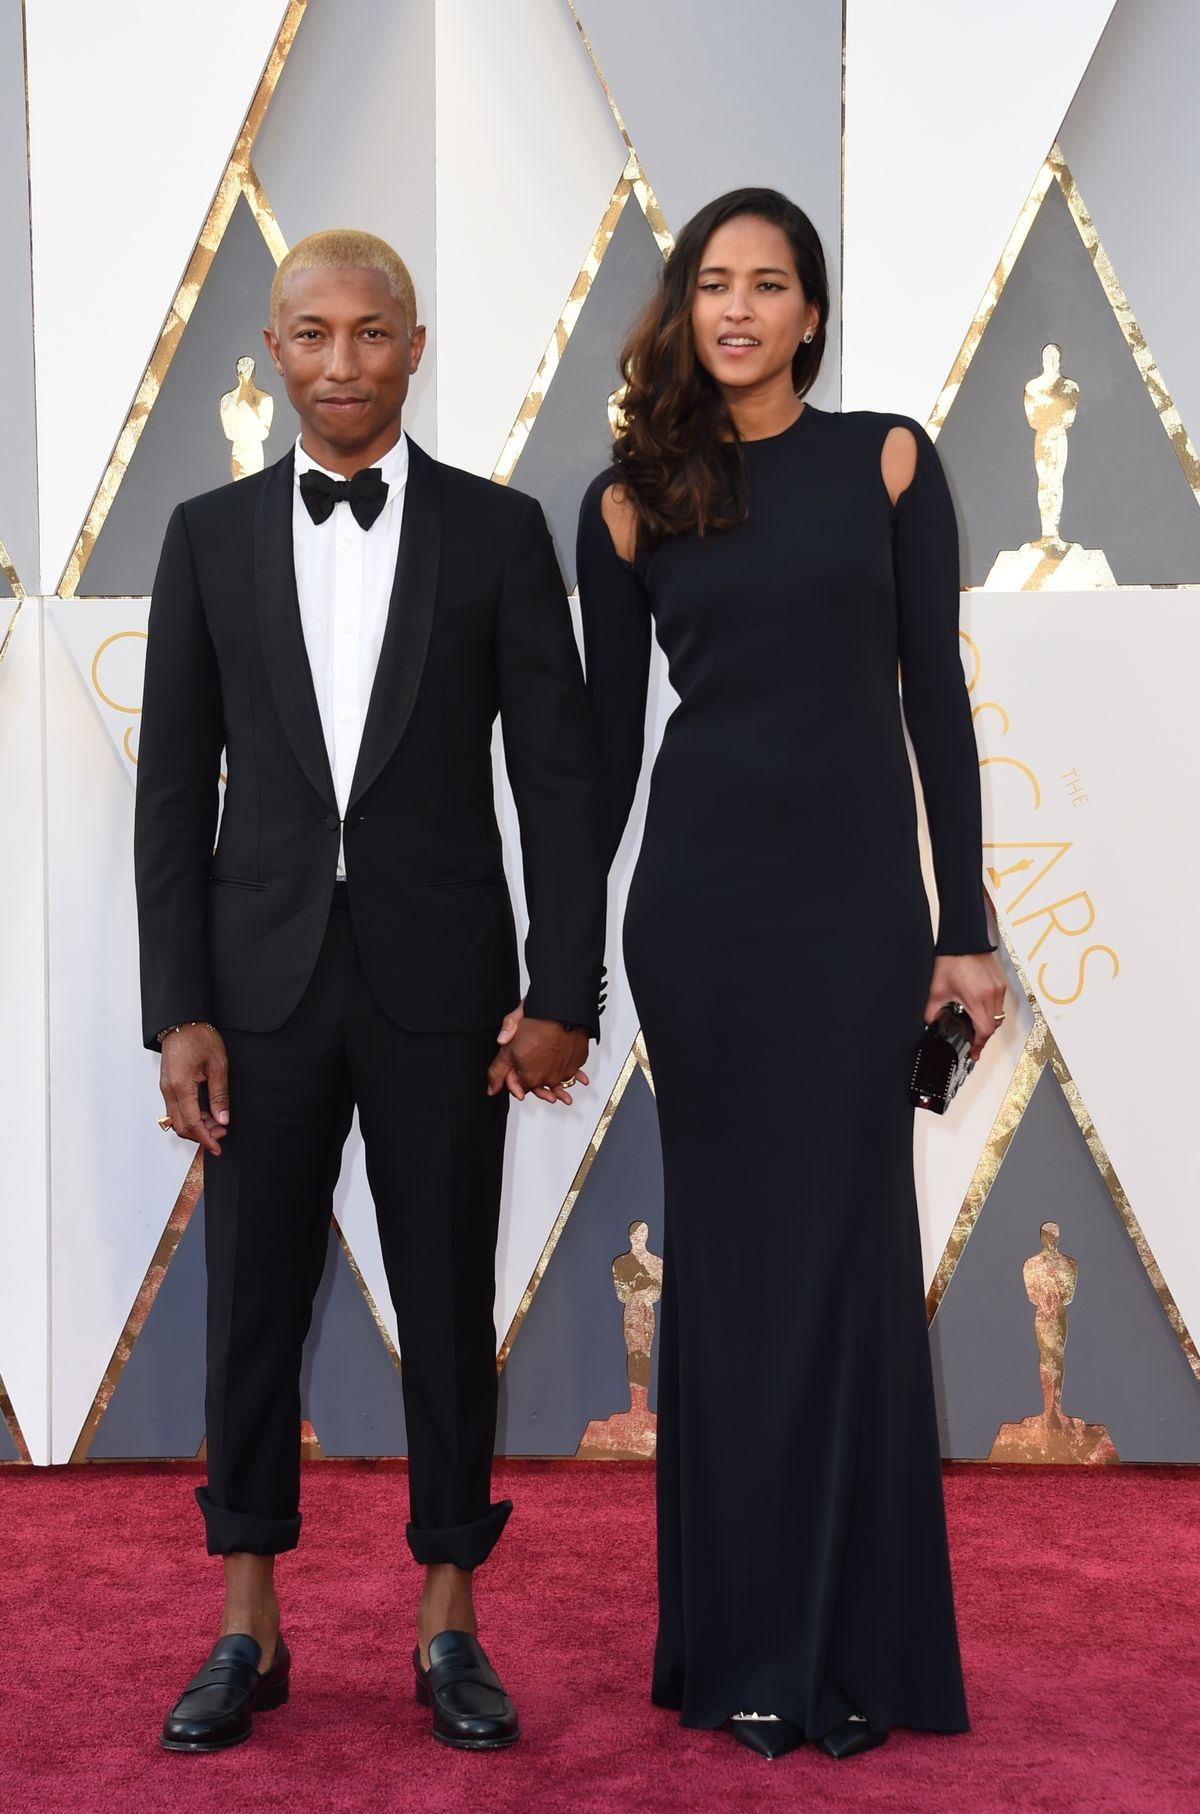 Singer Pharrell Williams and Helen Lasichanh arrive on the red carpet for the 88th Oscars on February 28, 2016 in Hollywood, California. AFP PHOTO / VALERIE MACON / AFP / VALERIE MACON (Photo credit should read VALERIE MACON/AFP/Getty Images)